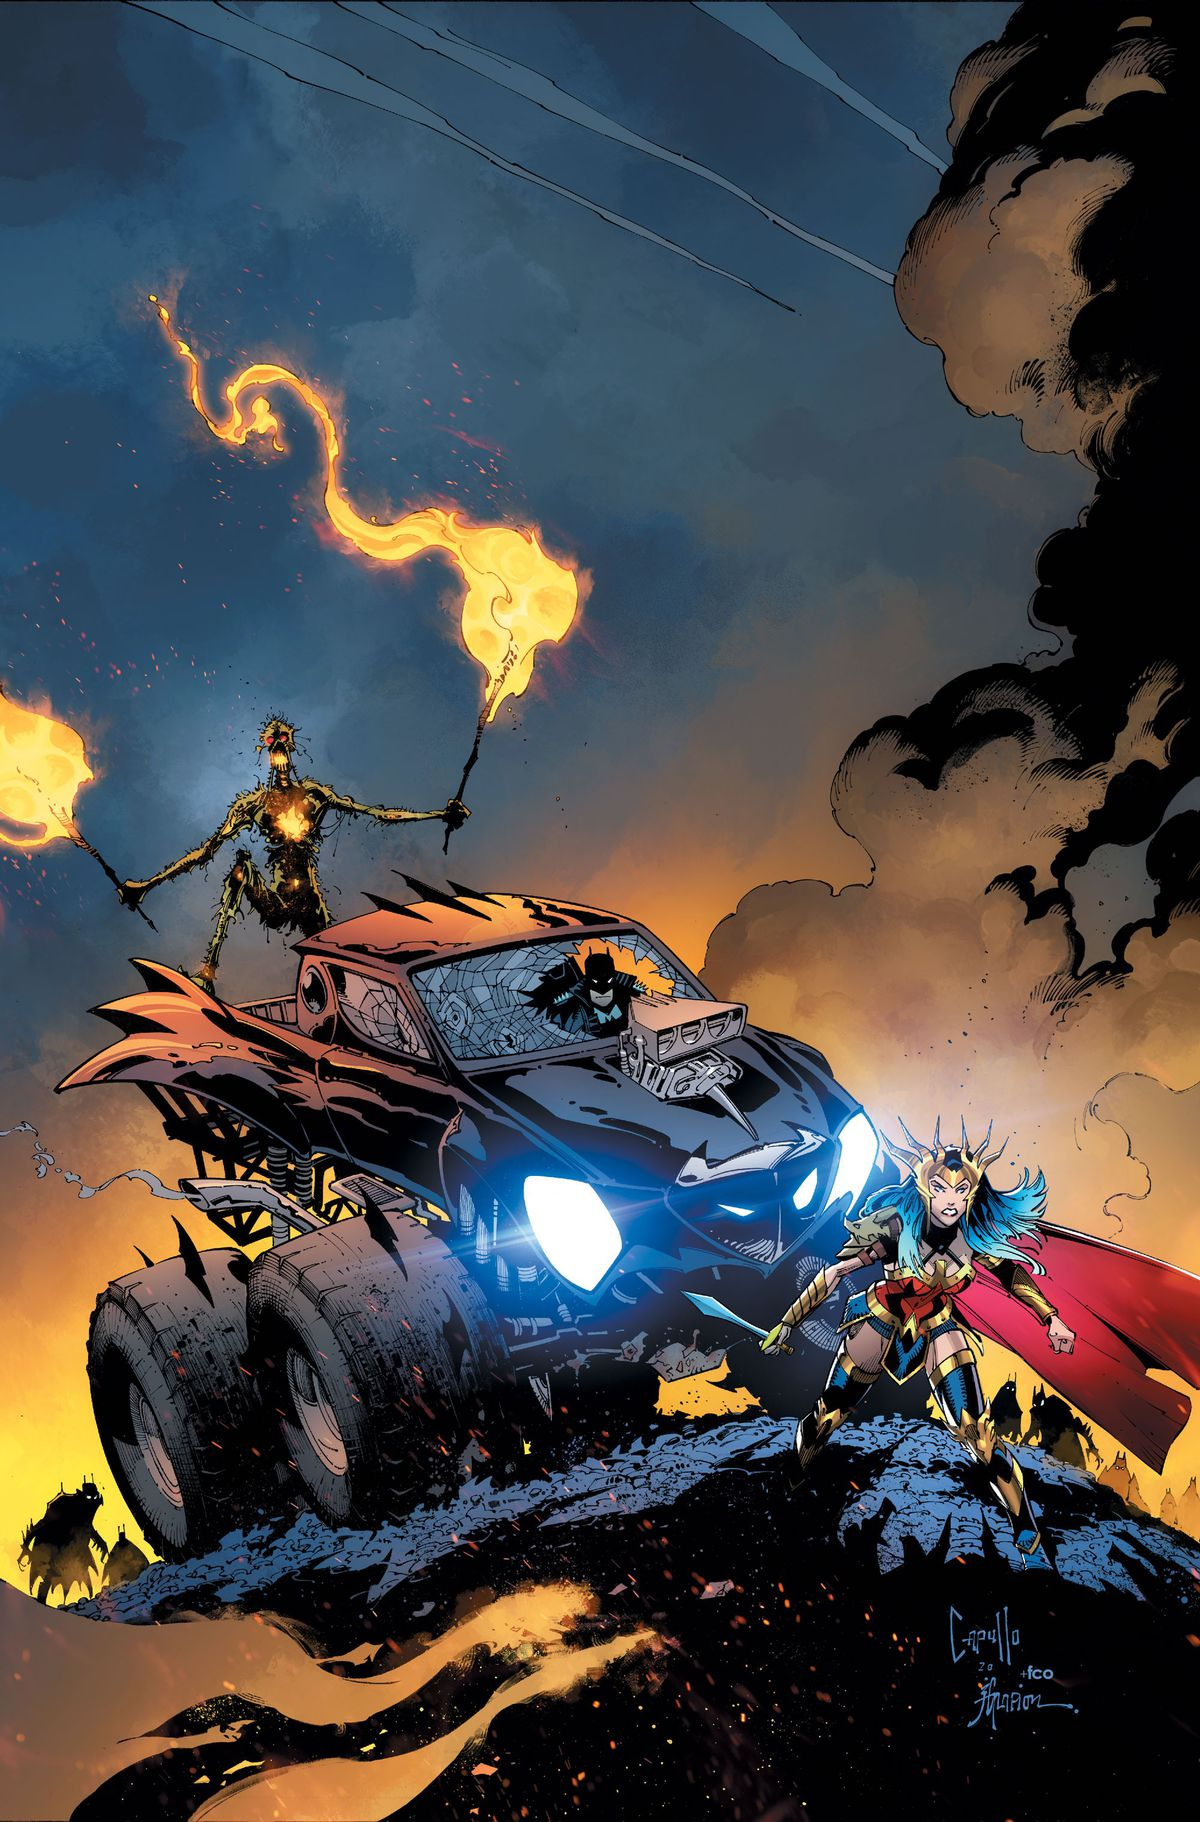 Wonder Woman crouches on a blasted hellscape in front of a batman-themed monster truck. Inside the truck's smashed windshield sits a stoic Batman. Atop the truck rides a withered Swamp Thing brandishing two lit torches, on the cover of Dark Nights: Death Metal #3, DC Comics (2020).